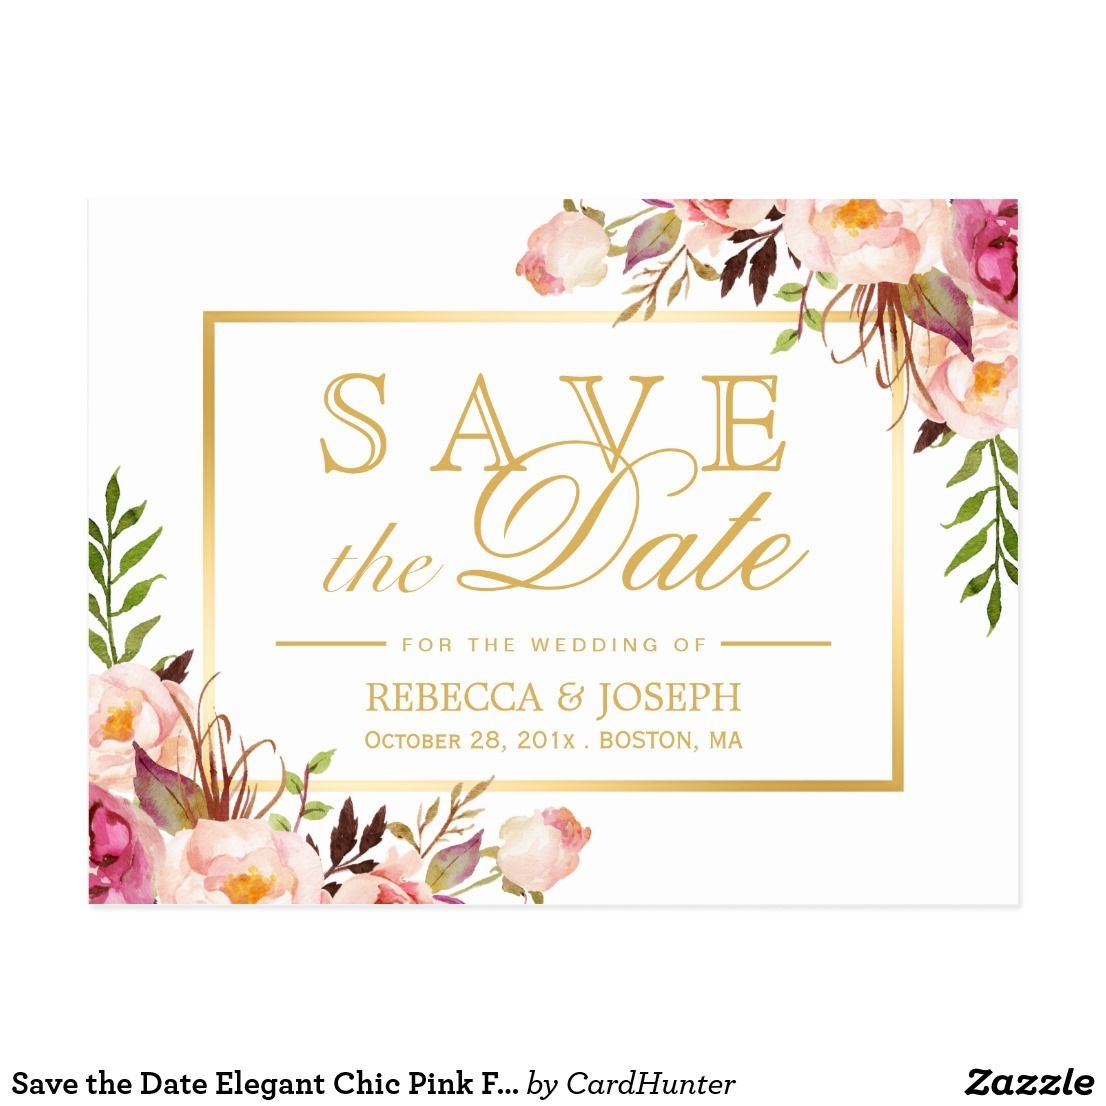 save the date elegant chic pink floral gold frame announcement